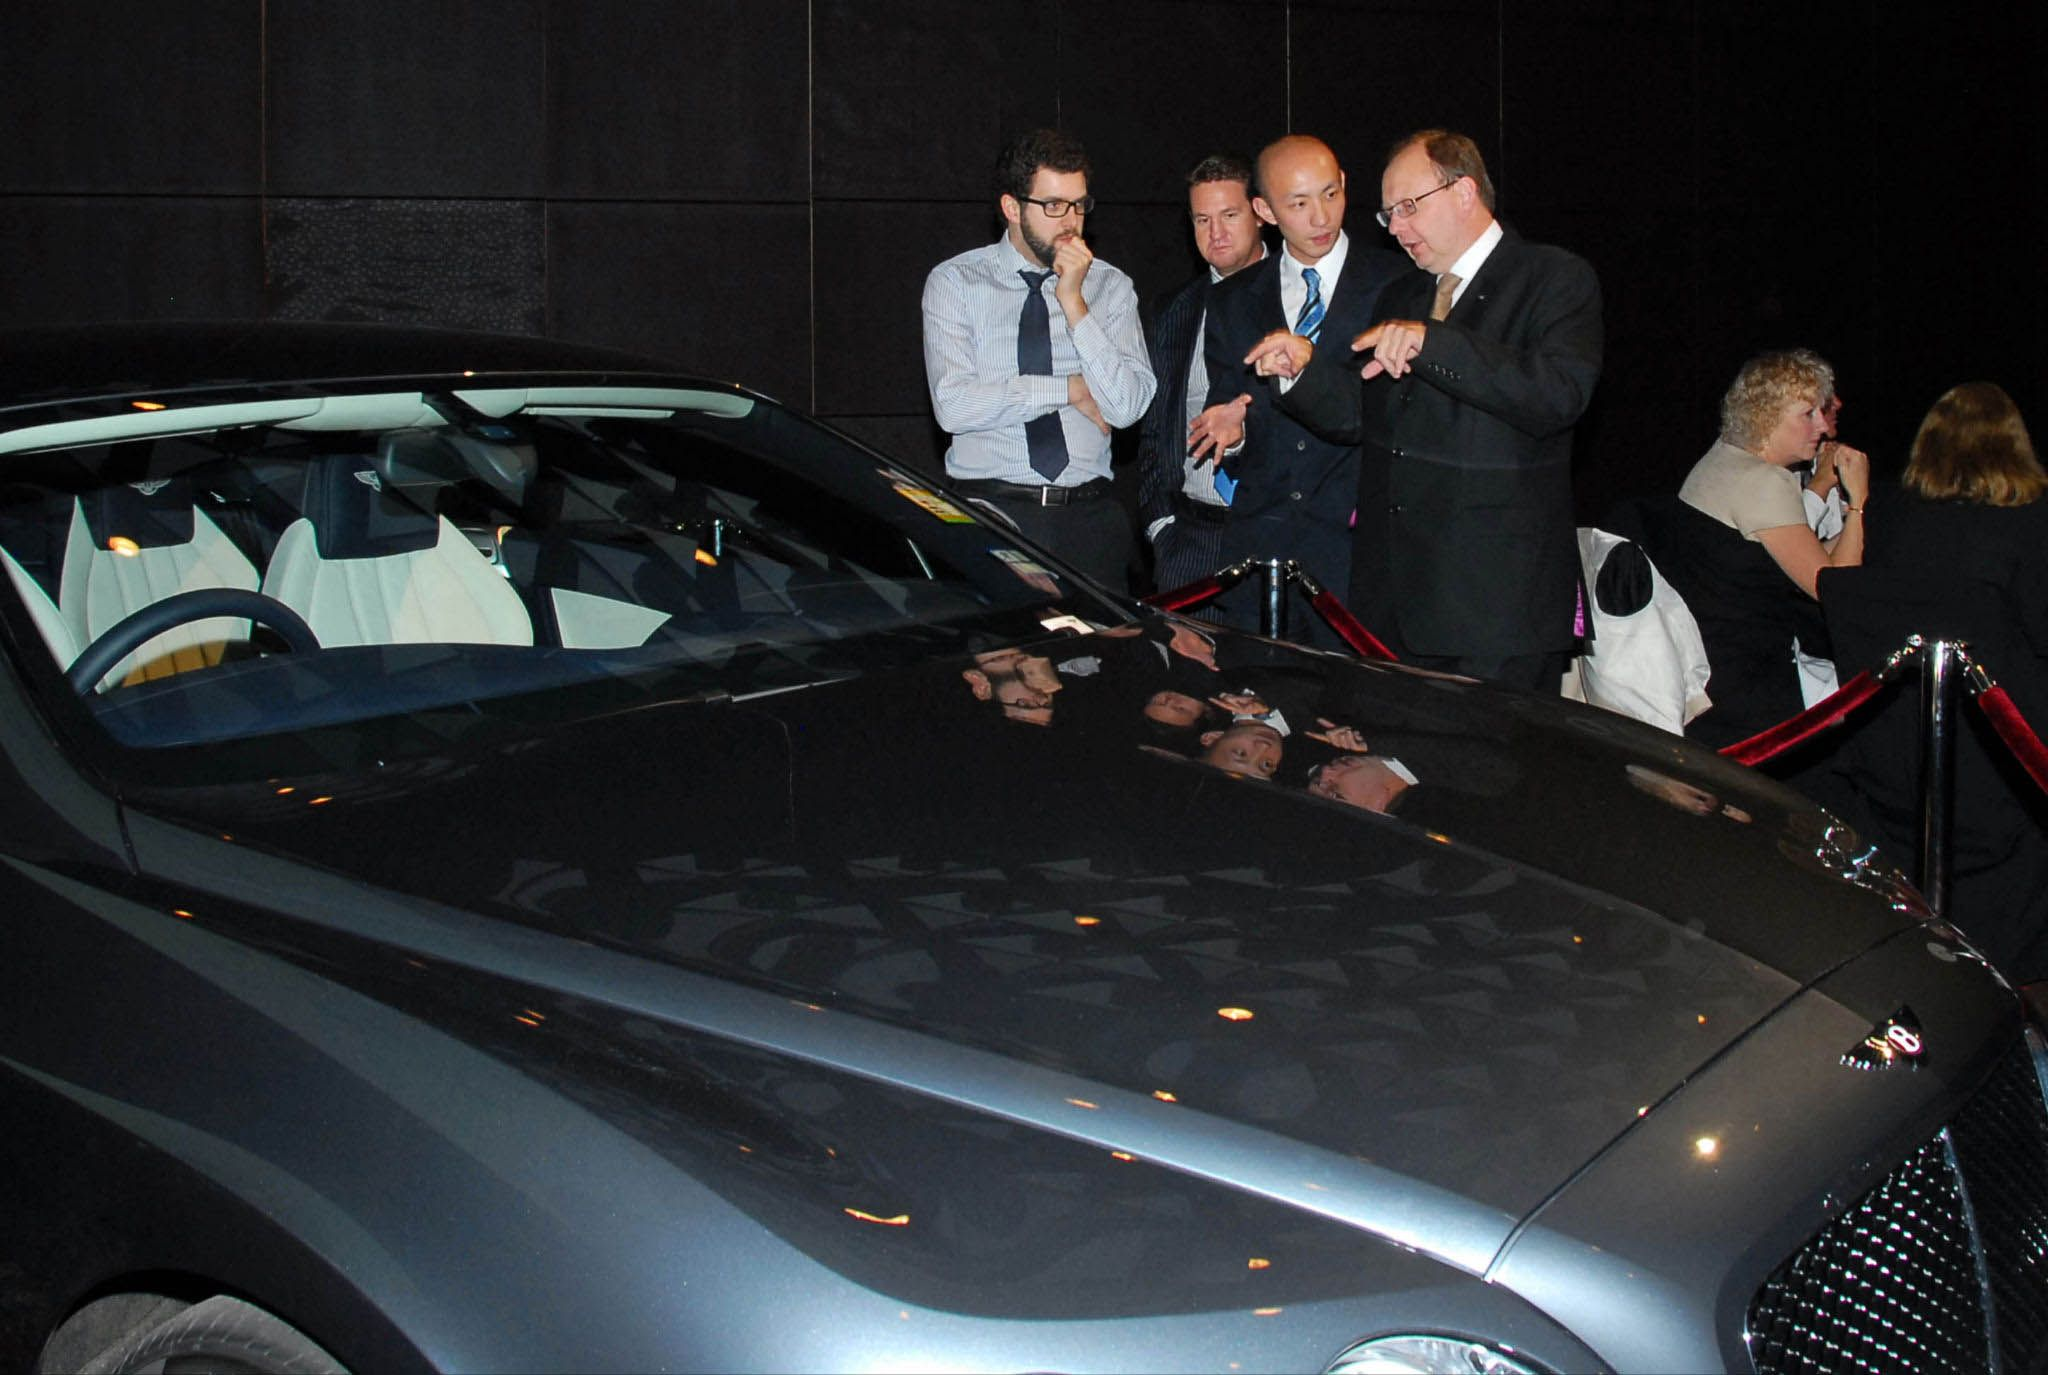 Bentleys were on display around the function room at the 2012 Lawyers Weekly Law Awards